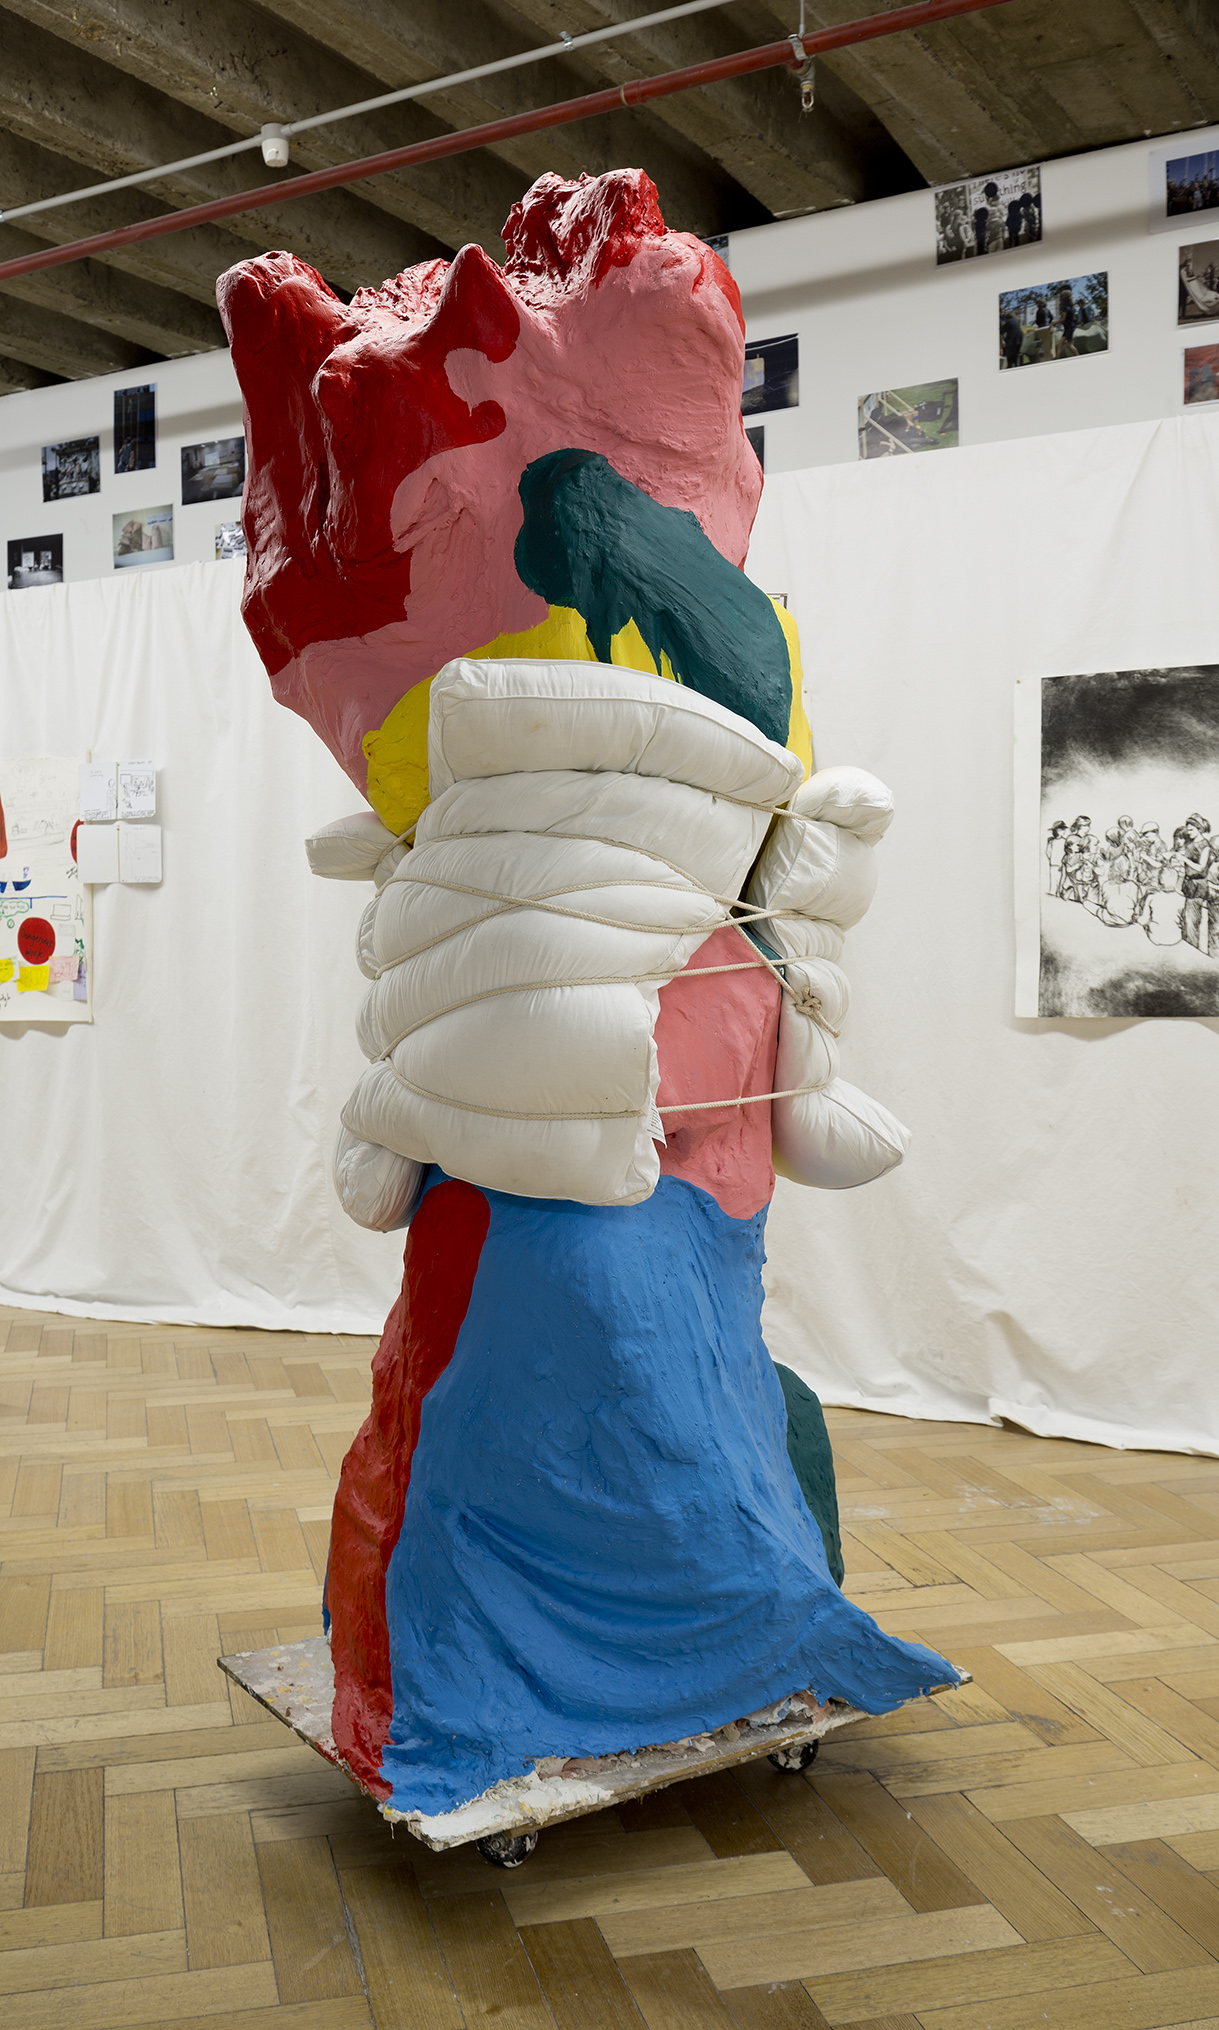 Education's blood with water viaduct and soft cell stitches , 2017, cardboard tubing, gauze from previous sculpture, backdrop material, plaster, house paint, clear Perspex single filing cabinet, curriculum documentation, rope, cardboard tubing, elastic, pillows, 2050 X 600 X 450mm. Image: Christo Crocker